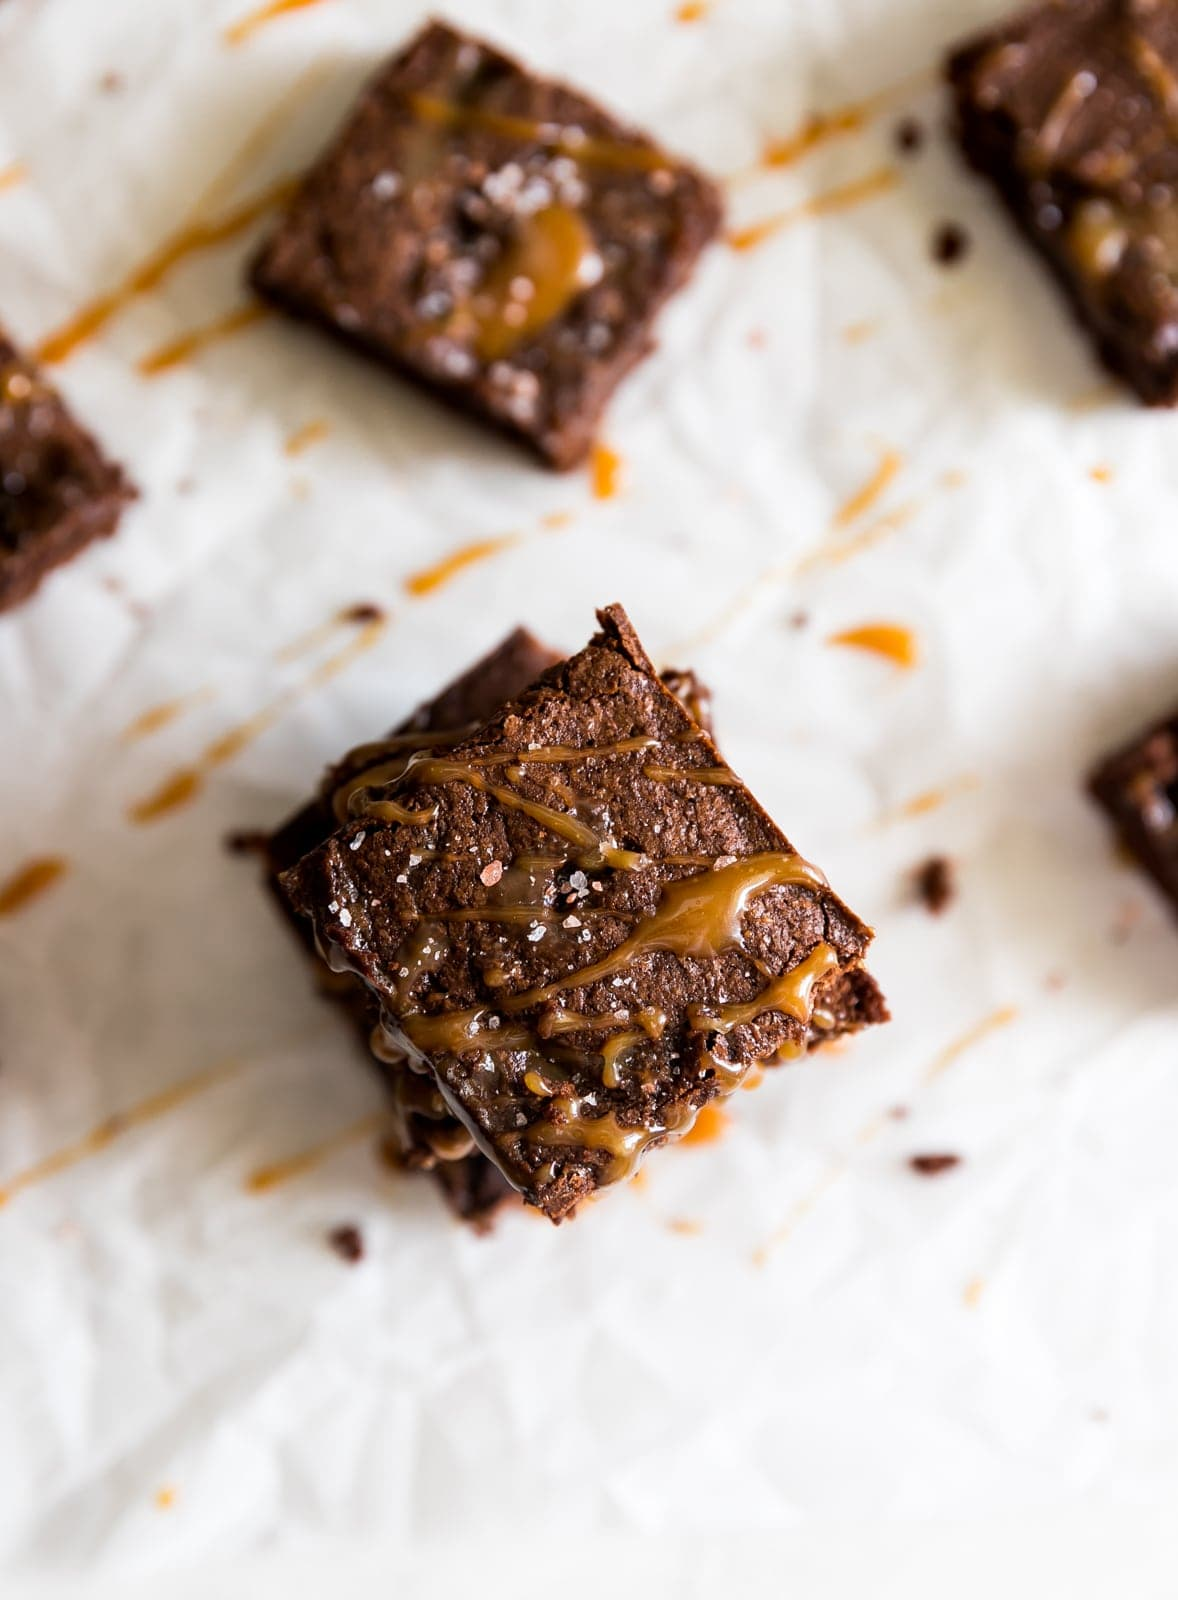 Super thick, fudgy, rich and delicious dark chocolate brownies swirled with homemade salted caramel sauce and a pinch of sea salt!